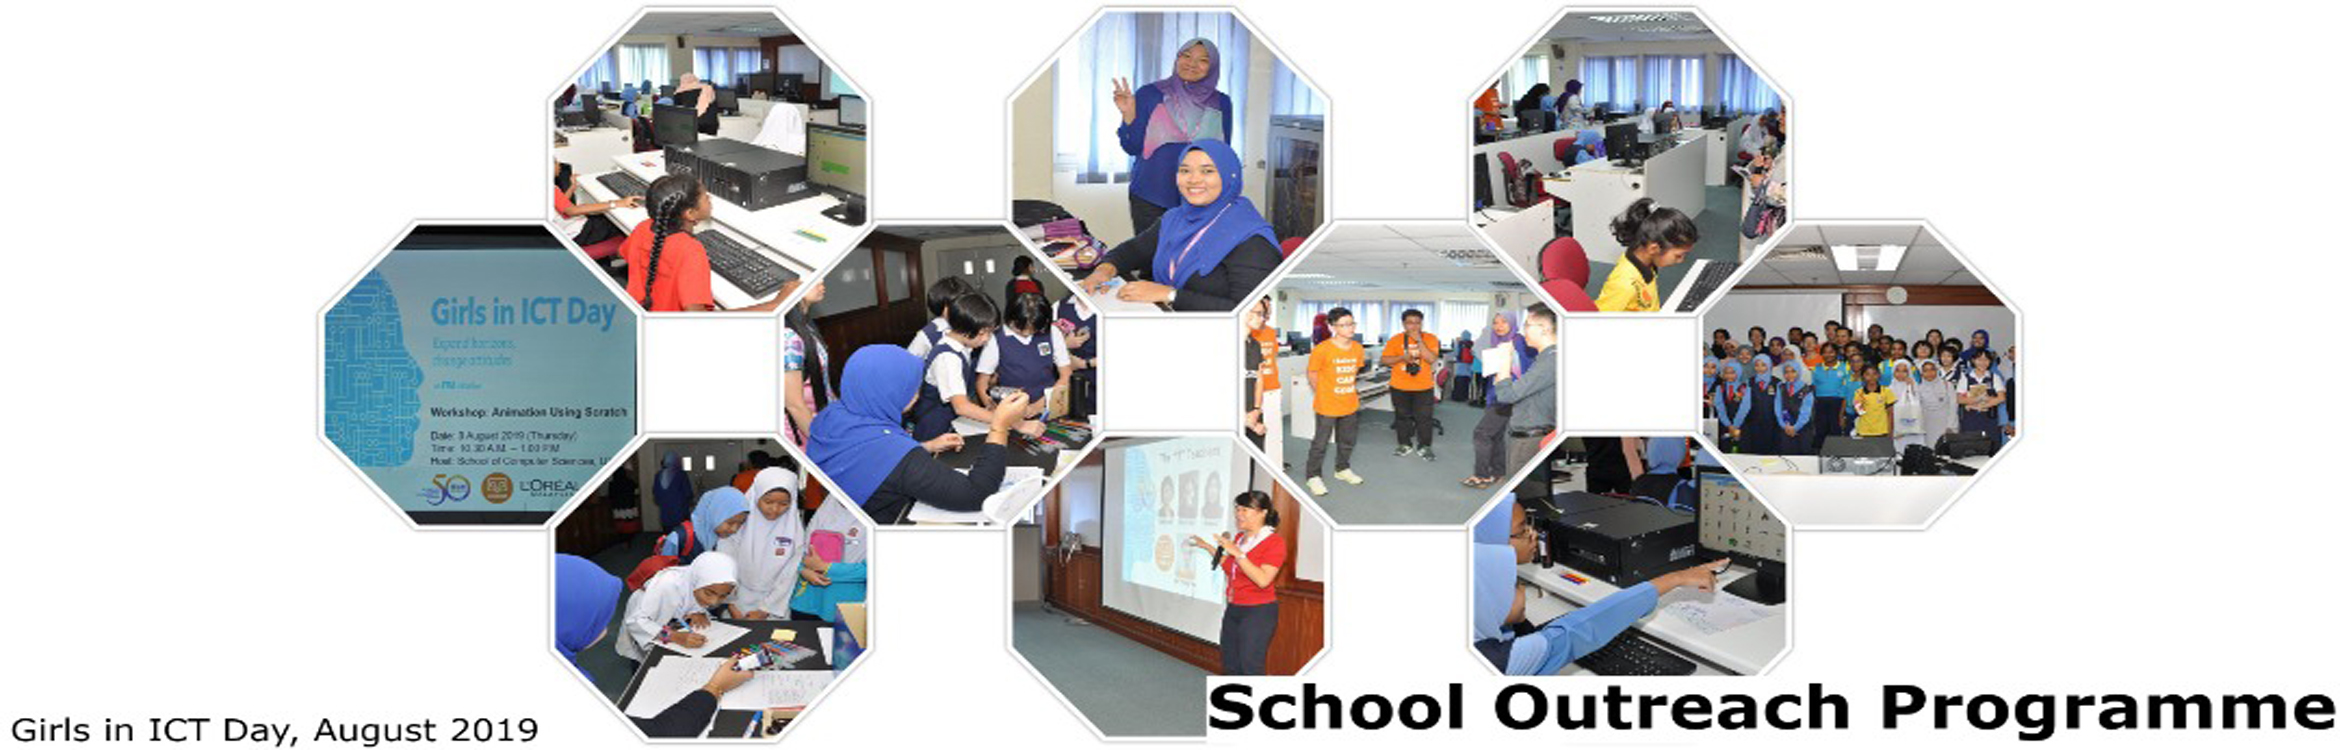 b schooloutreach